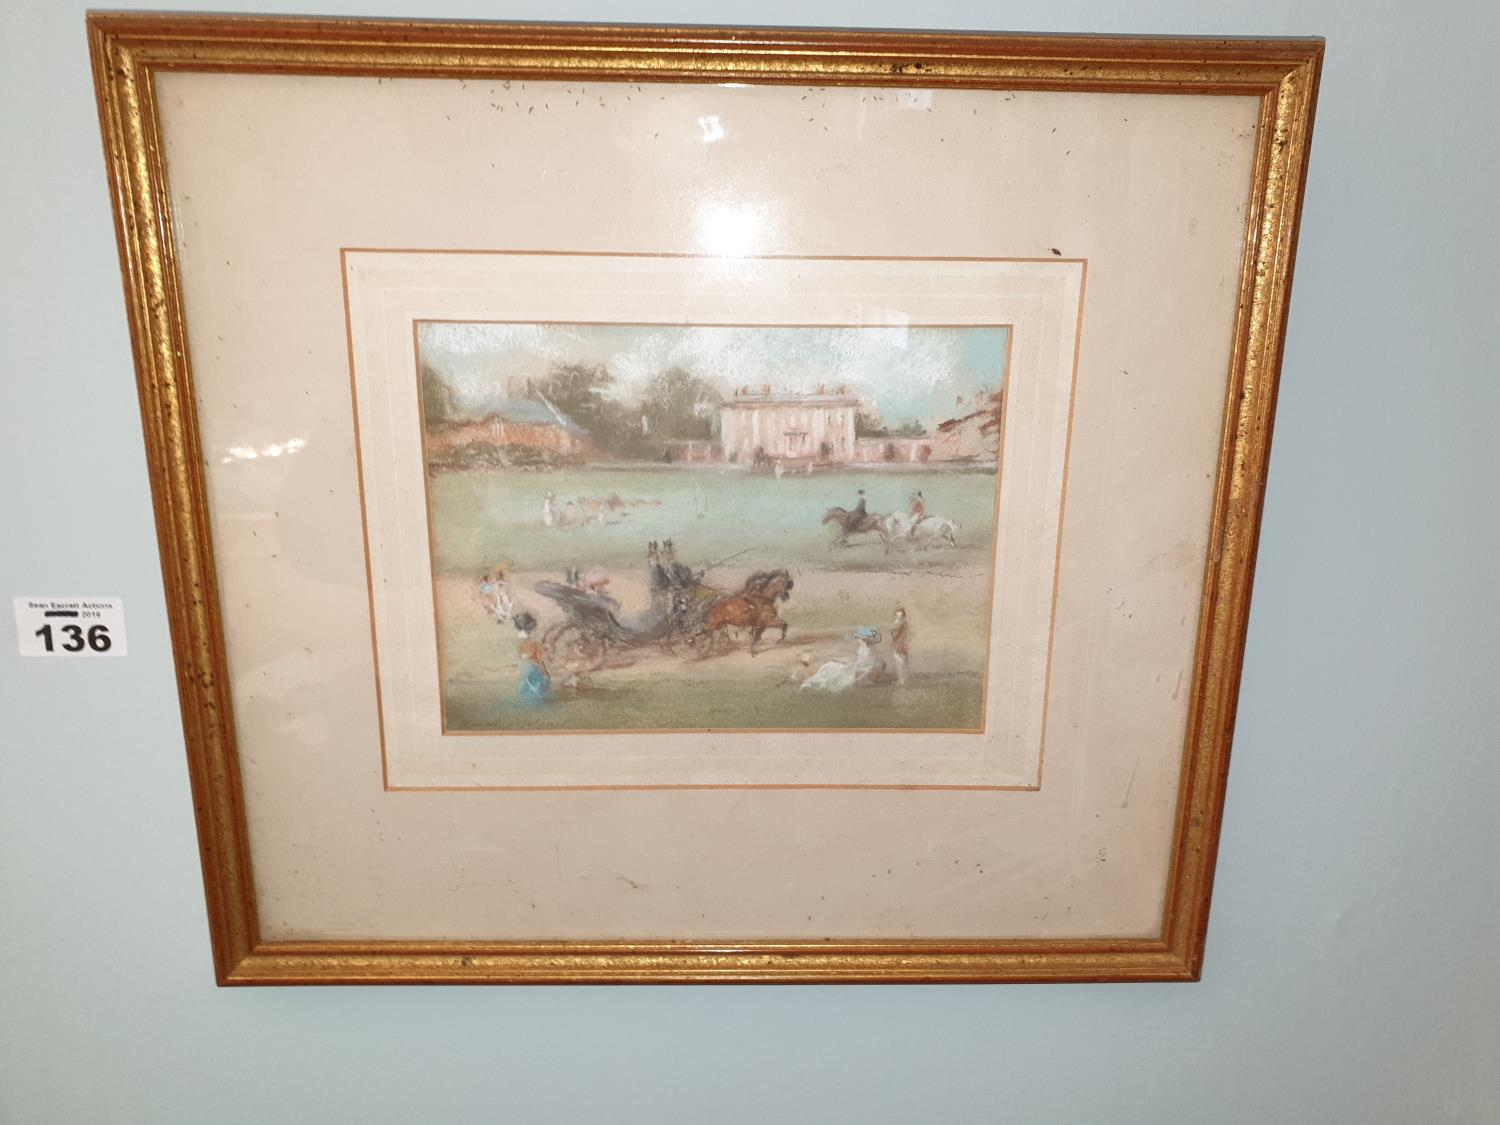 A Pastel Picture of a 19th Century scene.